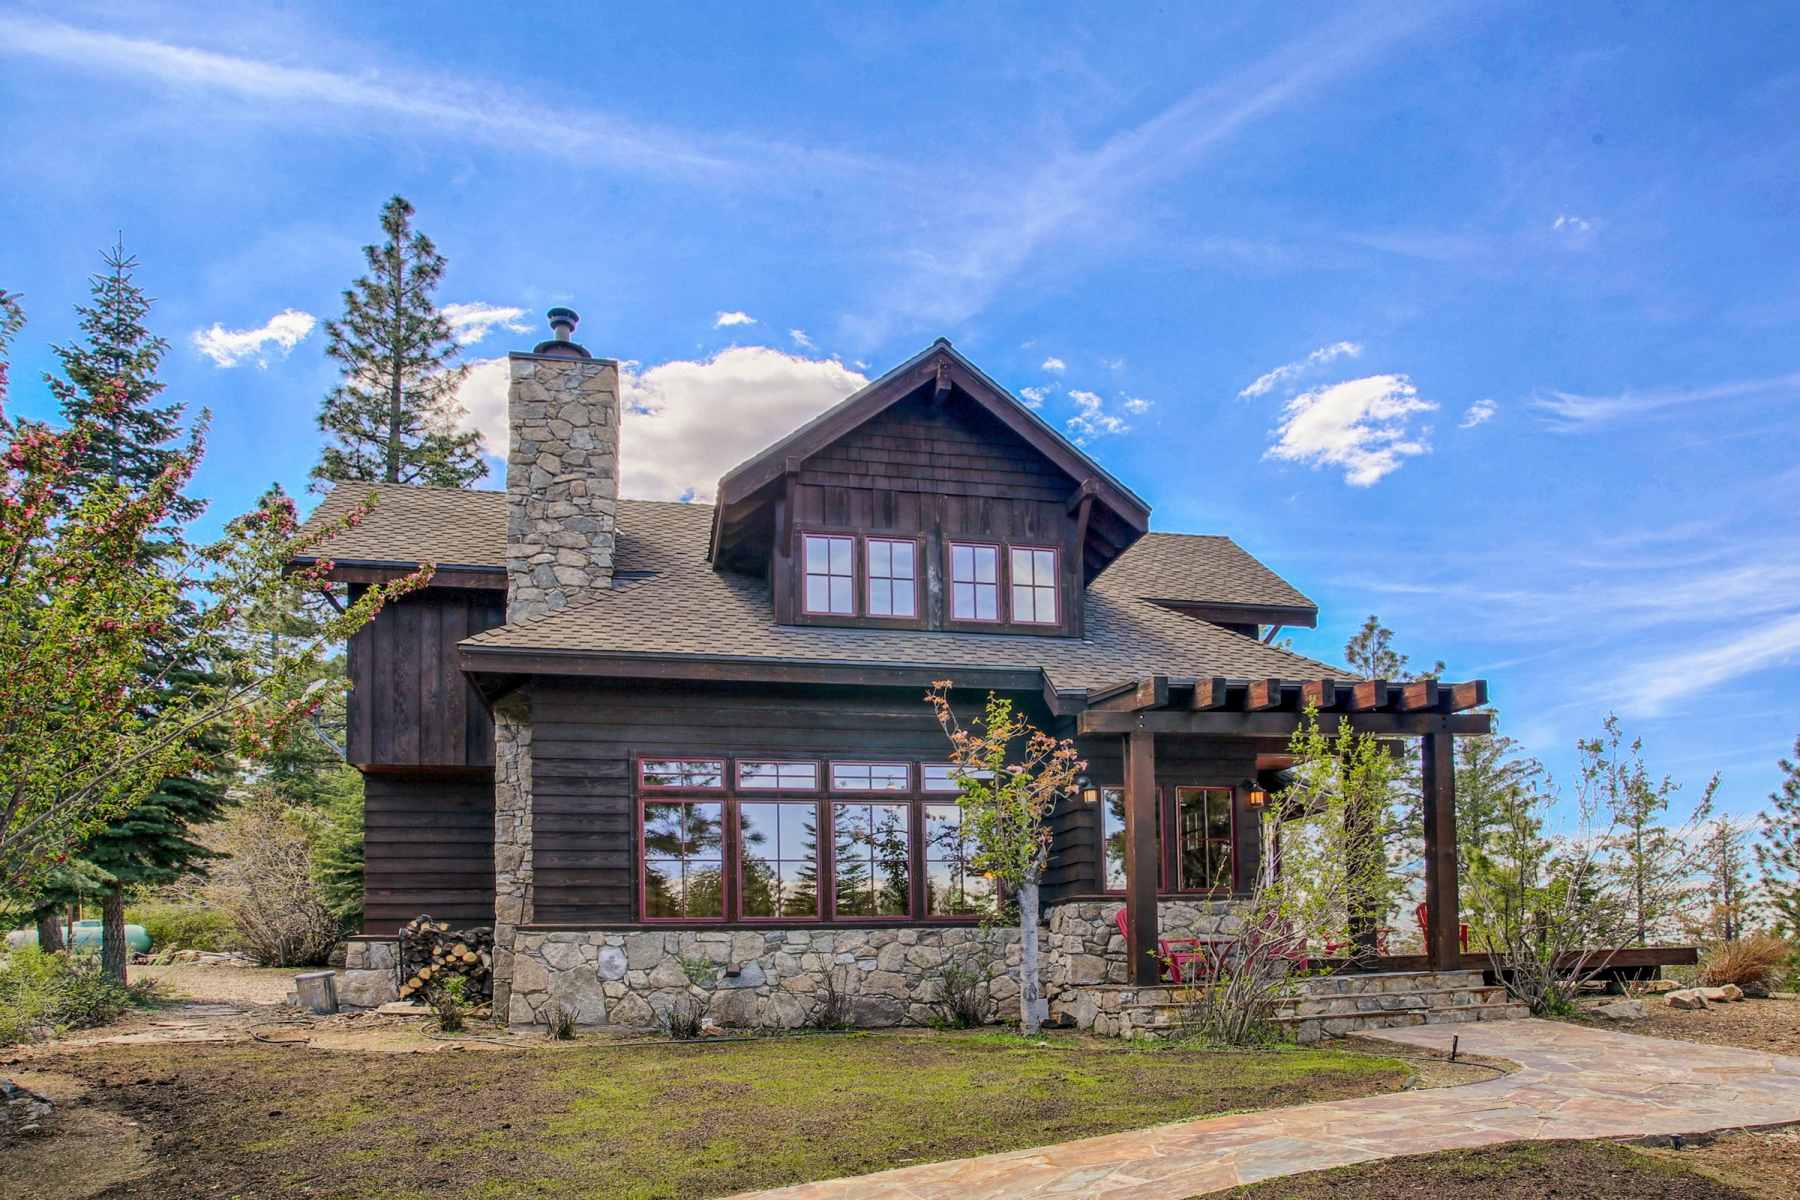 Single Family Home for Active at 11322 Somerset Drive, Truckee, CA Truckee, California 96161 United States